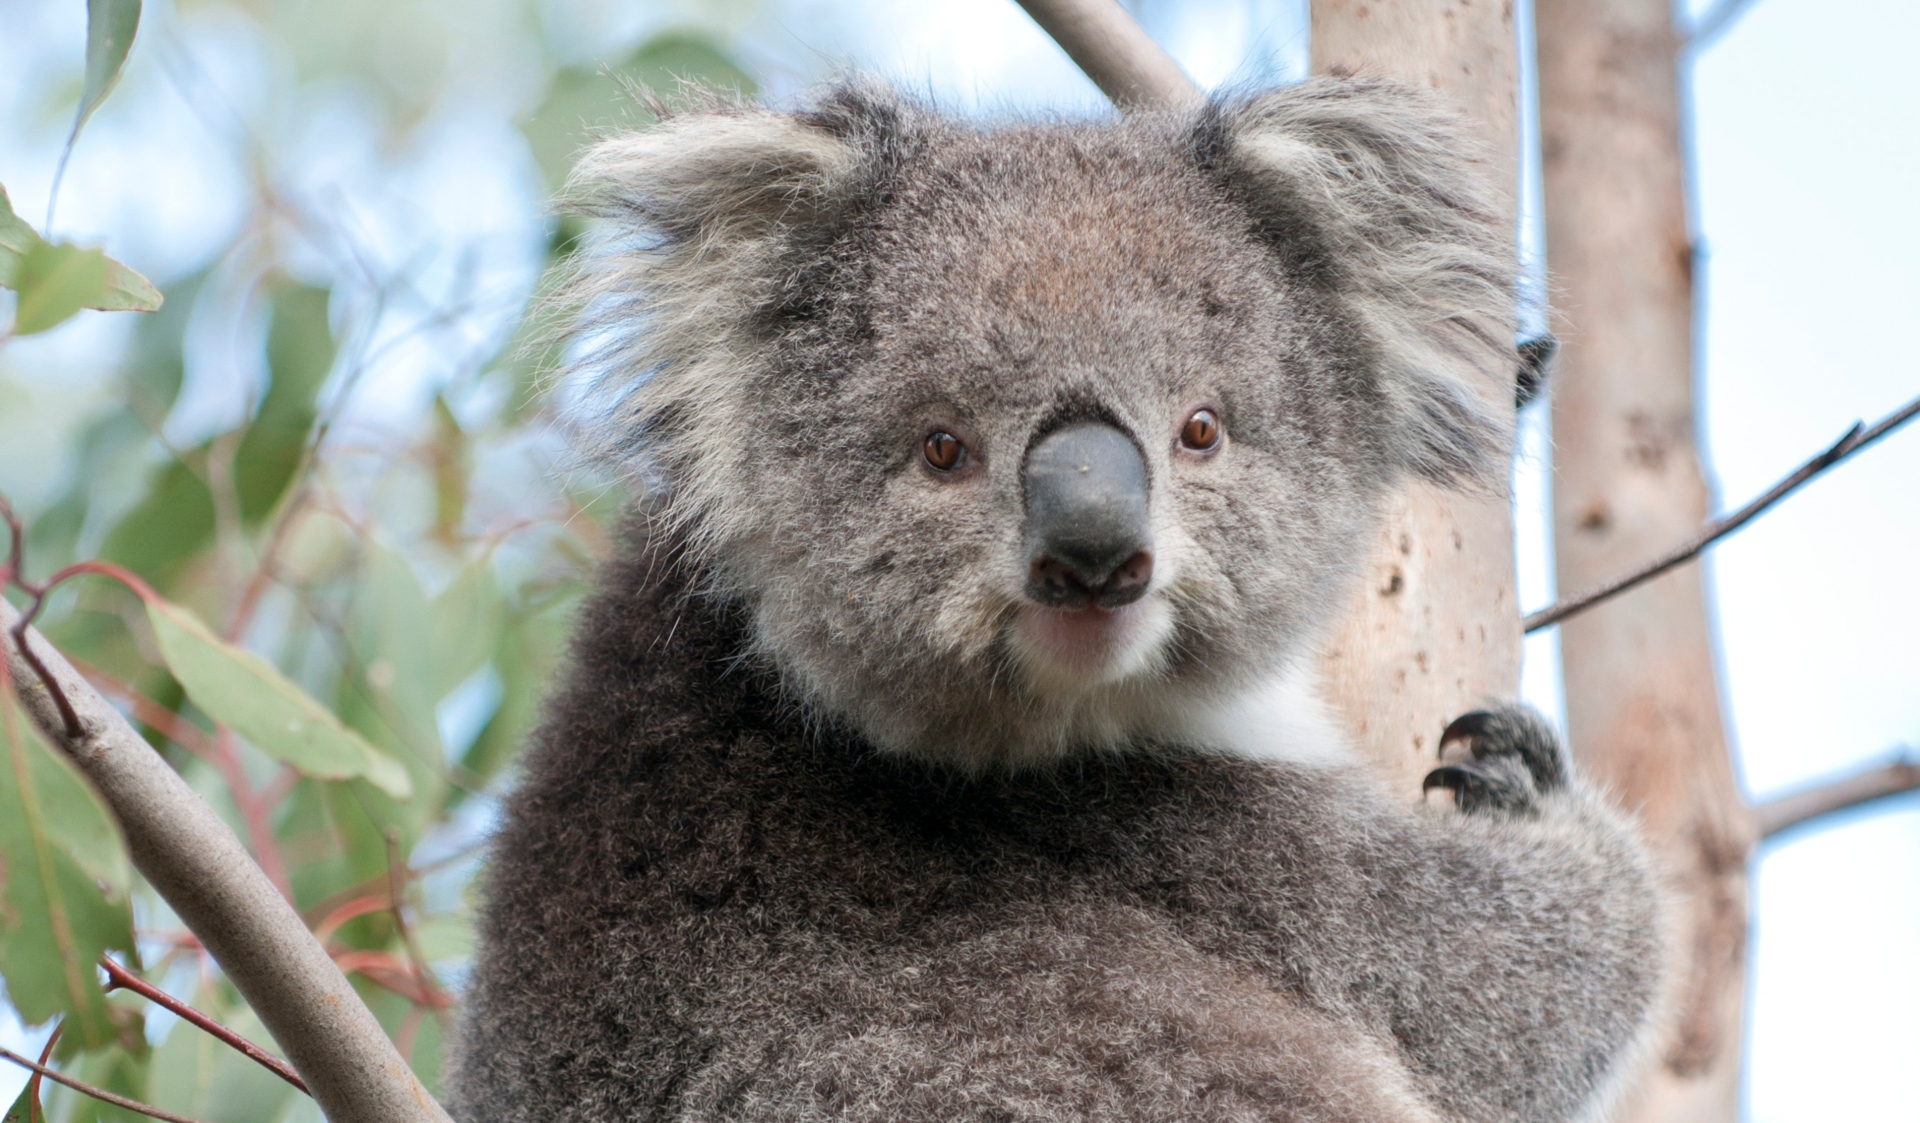 A koala sitting in a tree at French Island National Park.